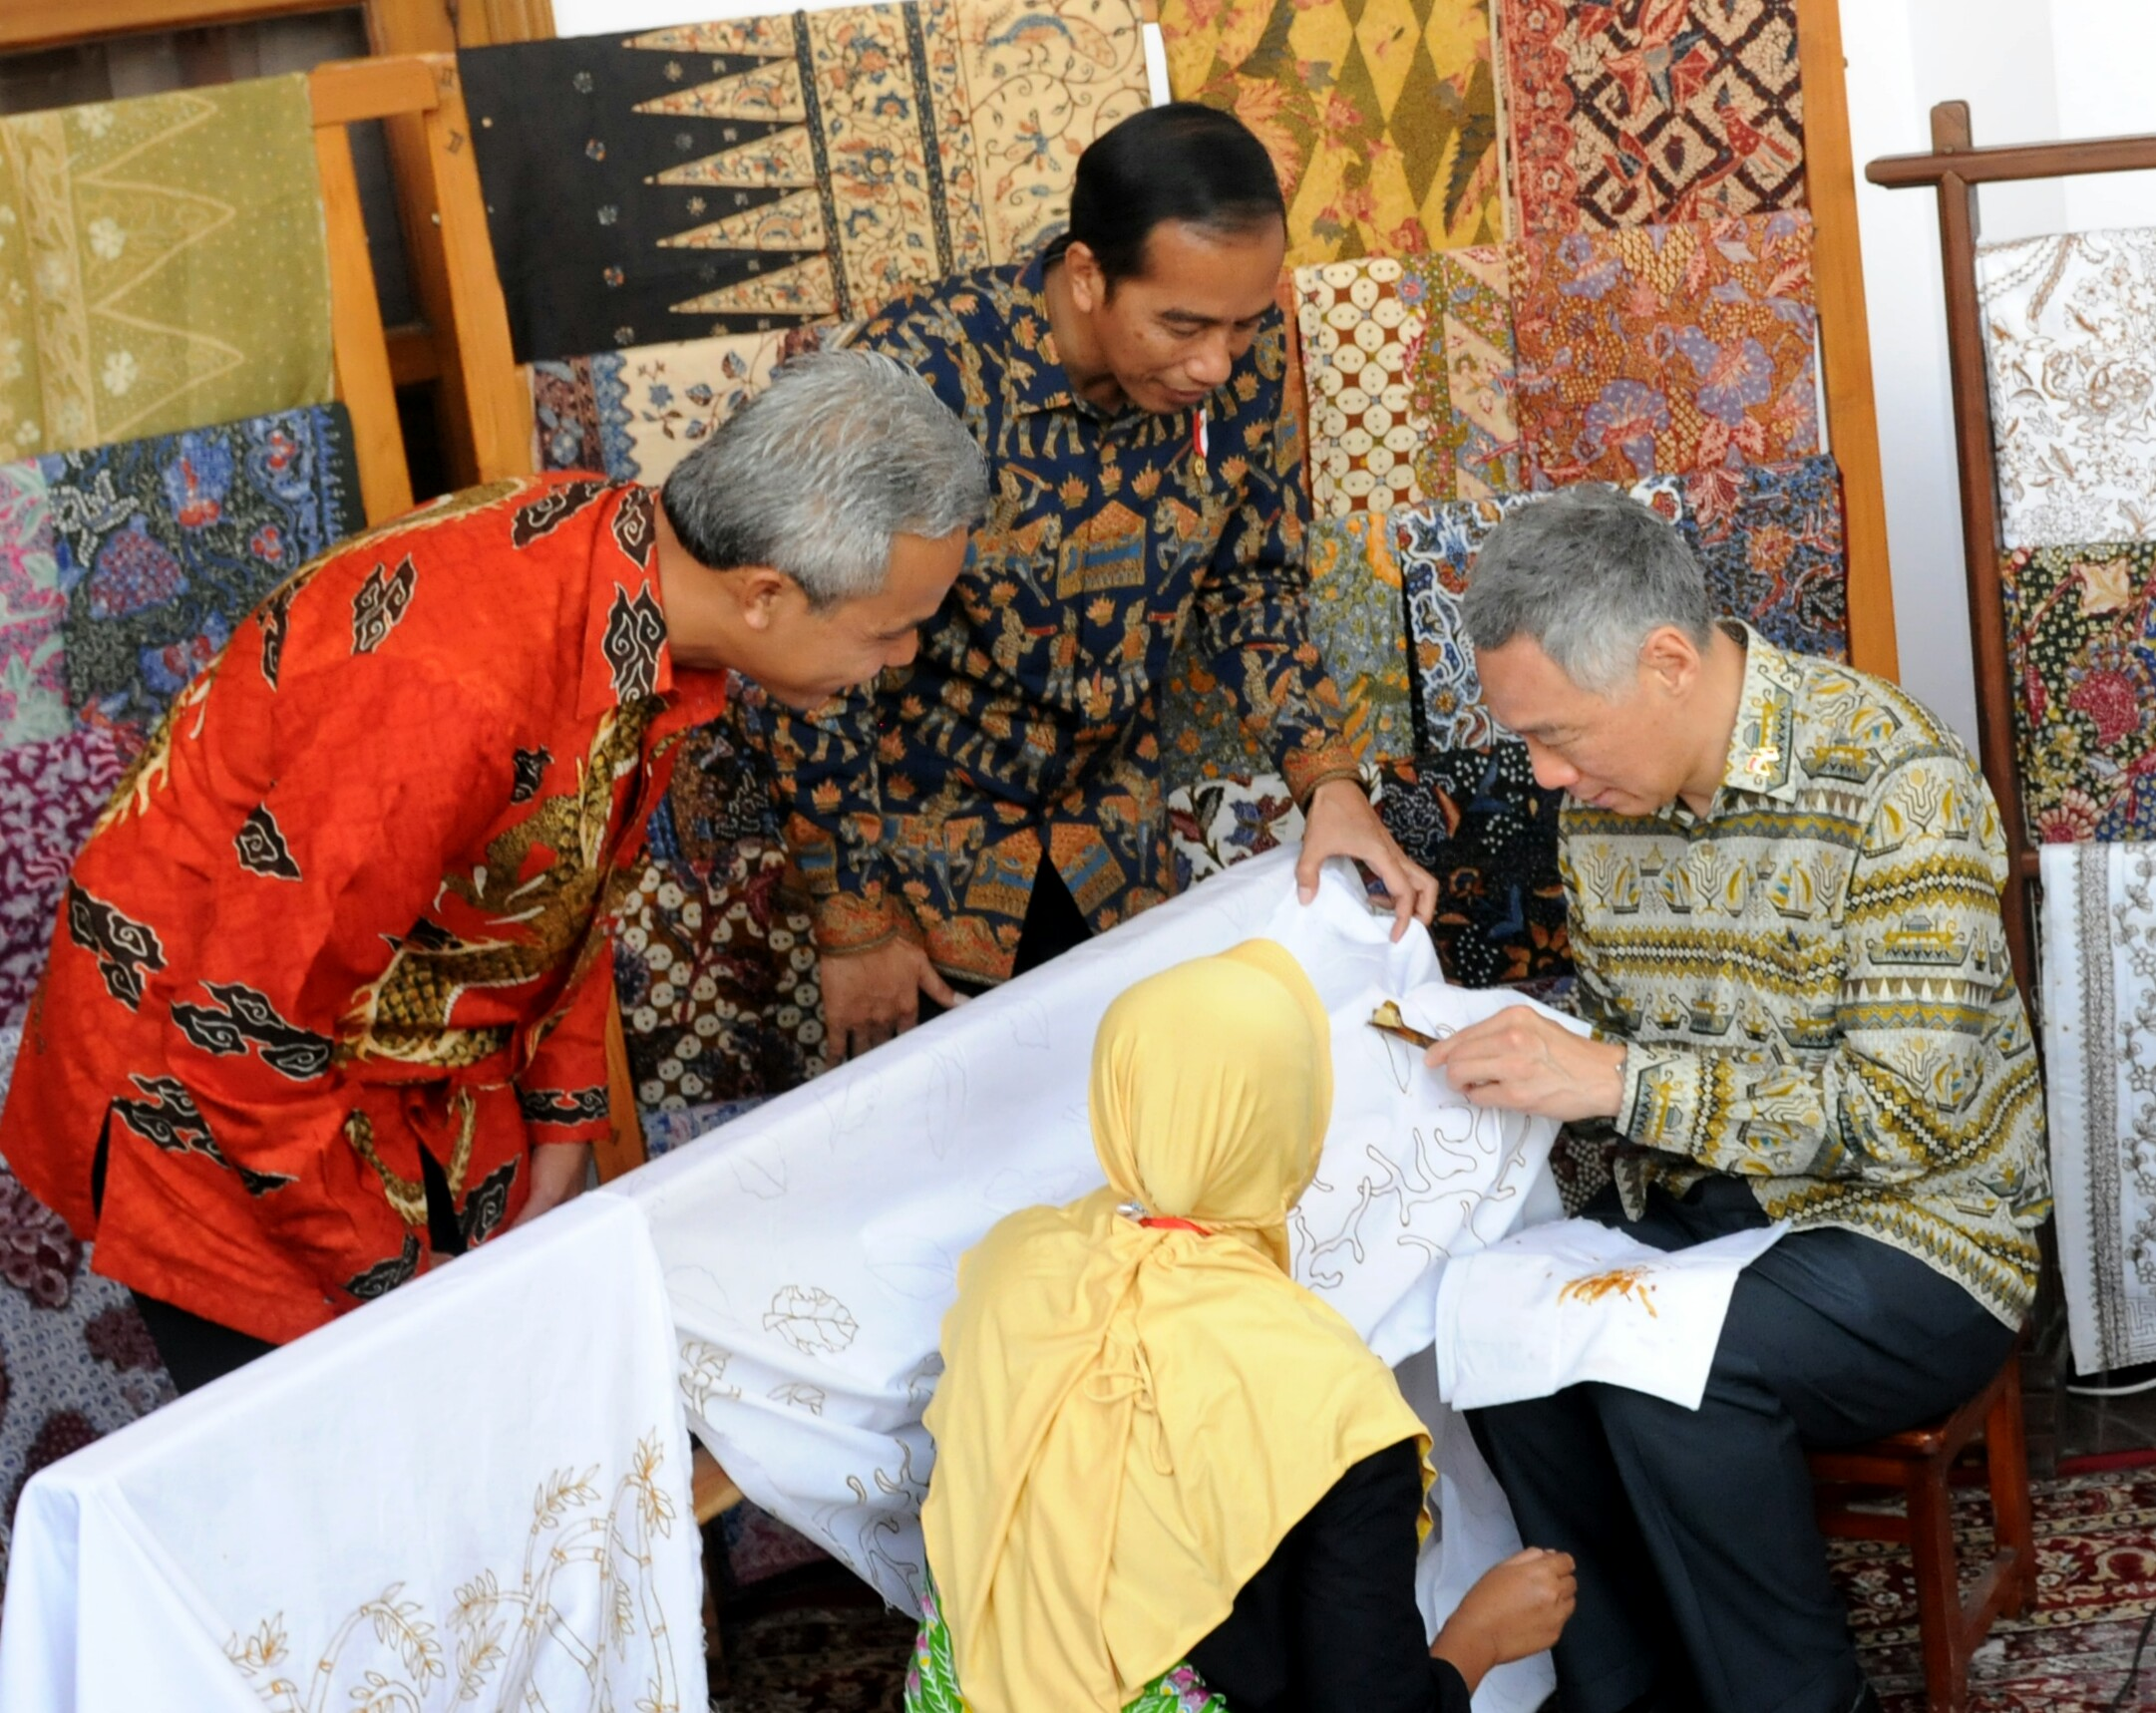 President Joko Widodo and Singapore's PM Lee Hsien Loong in Indonesia (14/11/16). Image:  Indonesia's Secretariat of the Cabinet